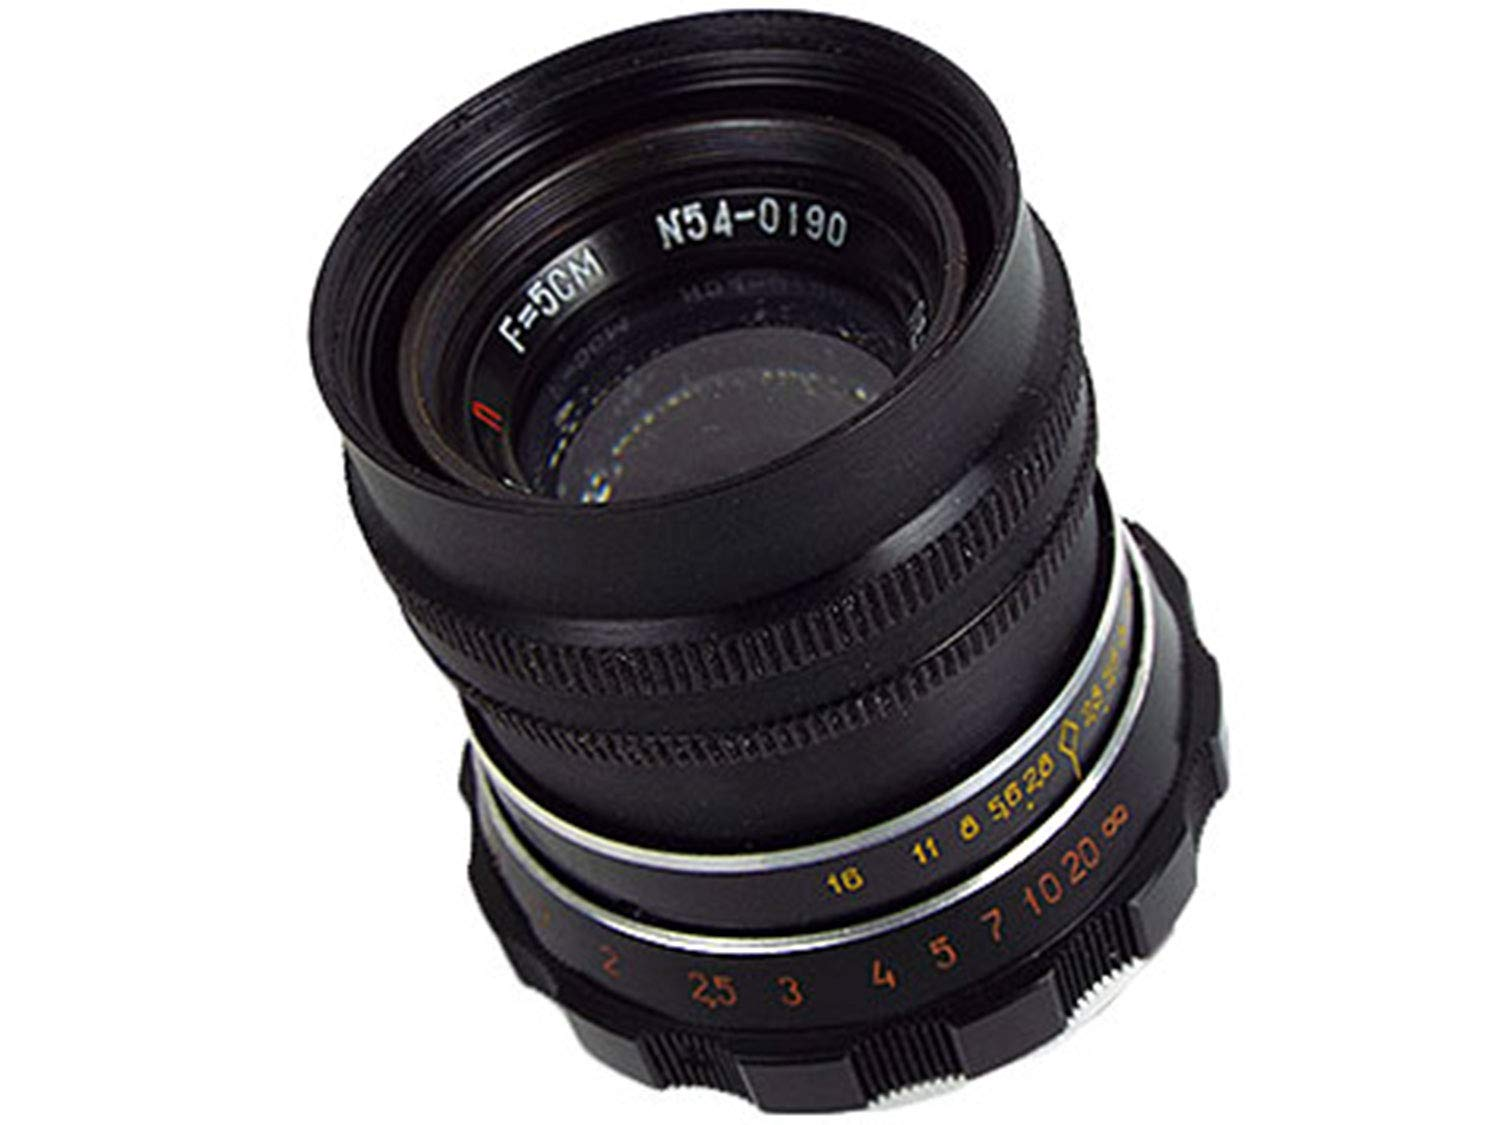 Includes Lens Adapter Ring Optics 2.0X High Definition Telephoto Conversion Lens for Fujifilm FinePix S8600